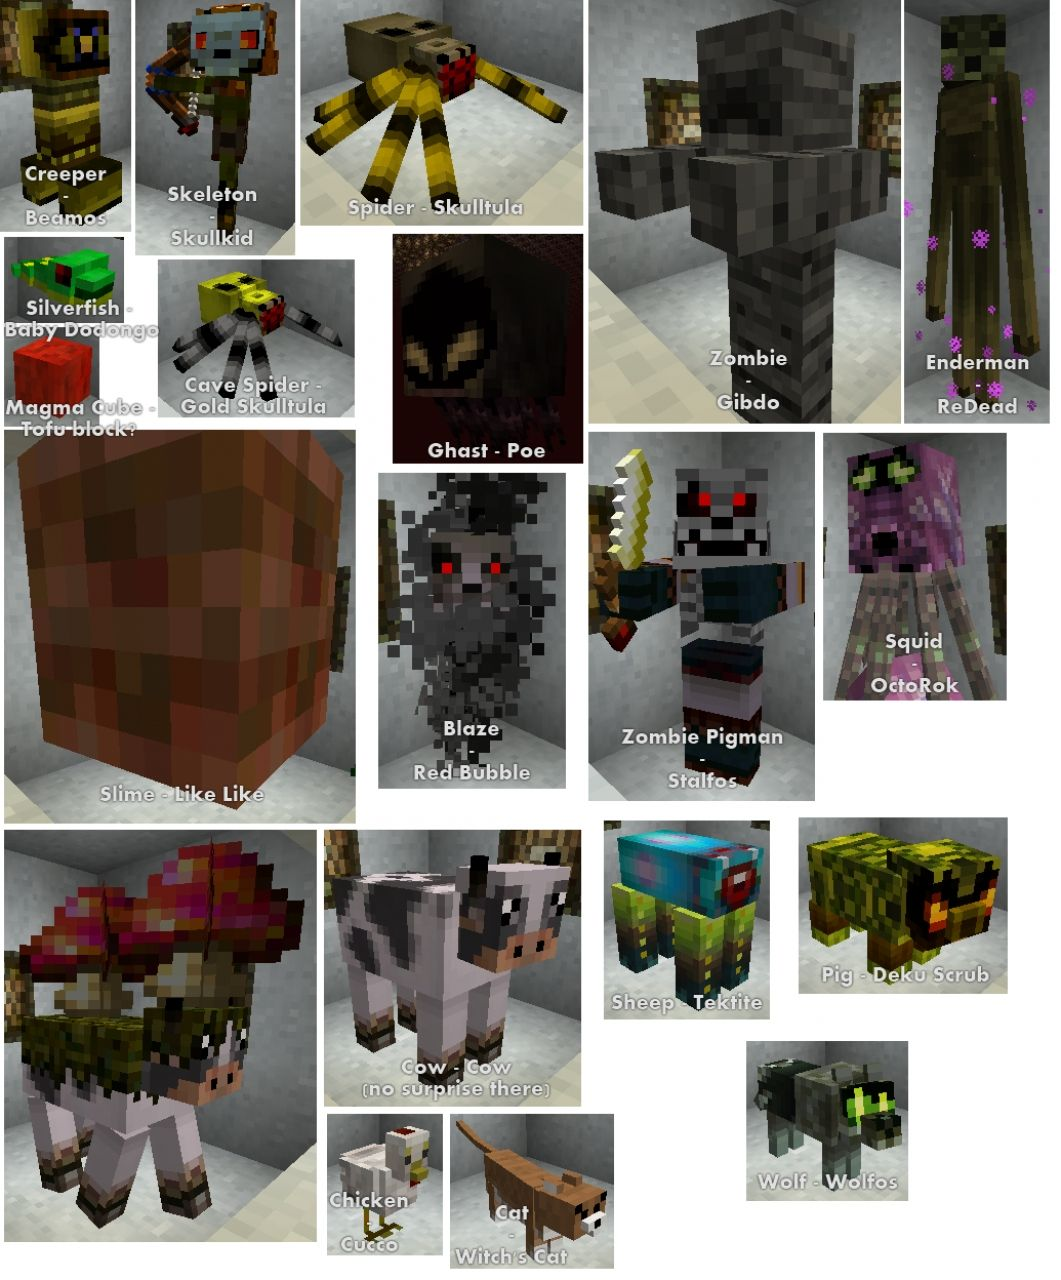 Version 24.5 mobs (picture donated by a fan)